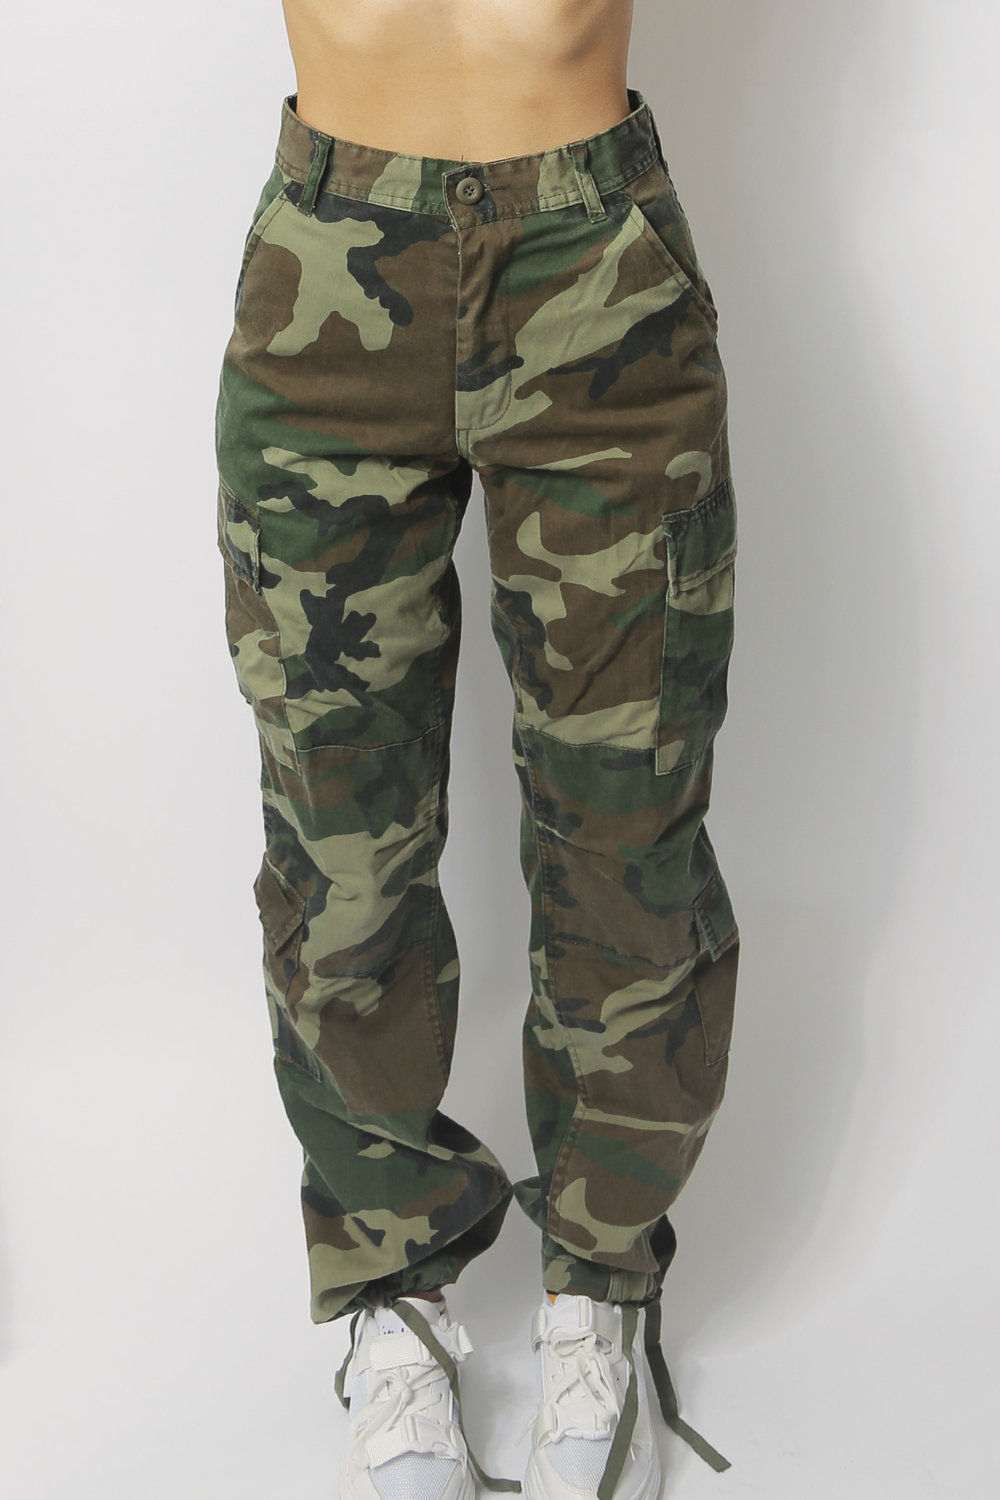 authentic vintage camo army pants — iamkoko.la b4696f7377d